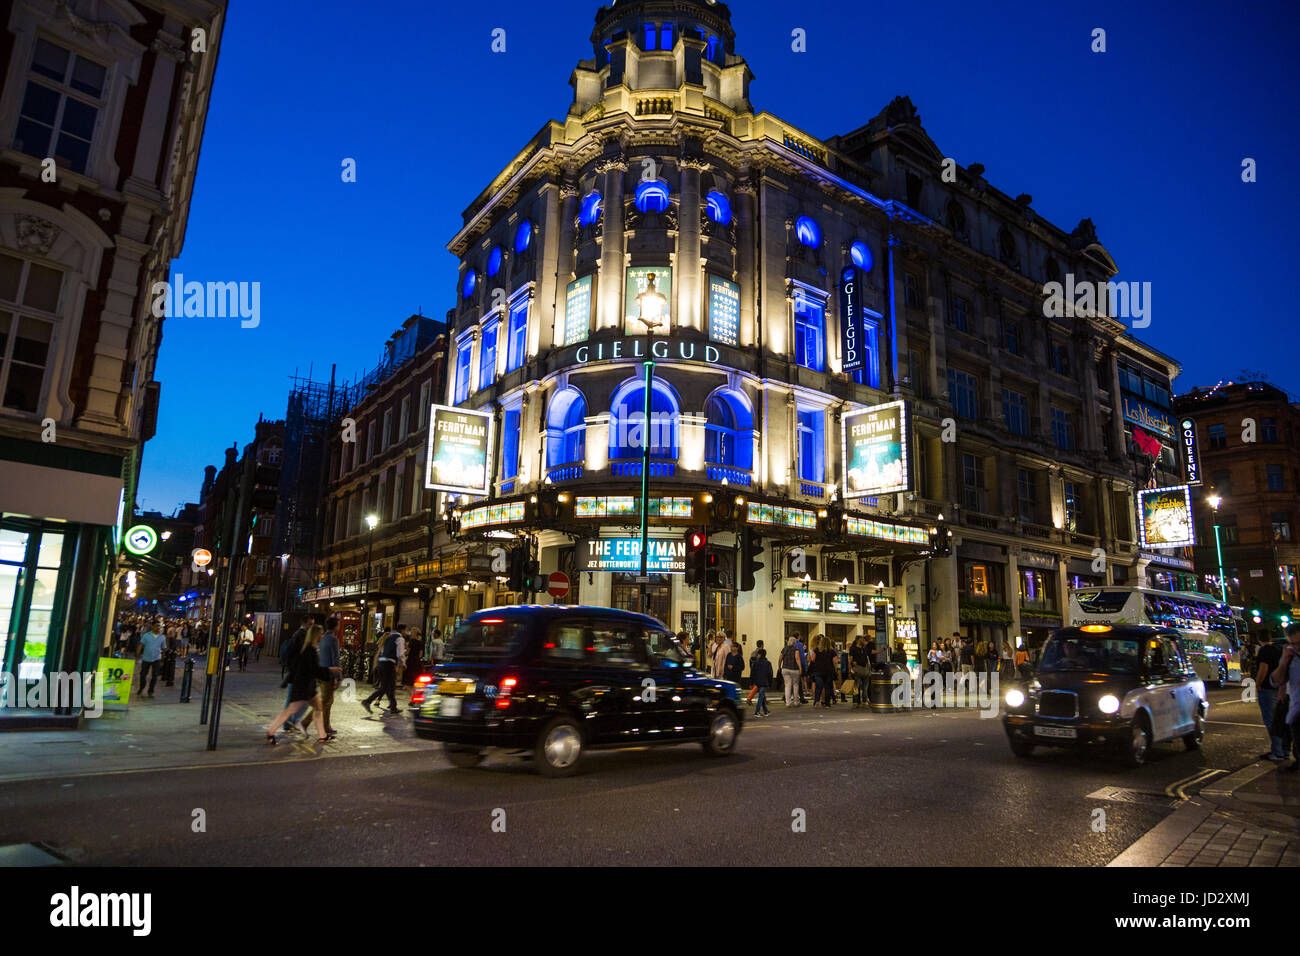 West End at night, Gielgud Theater showing The Ferryman, Piccadilly, London, UK - Stock Image